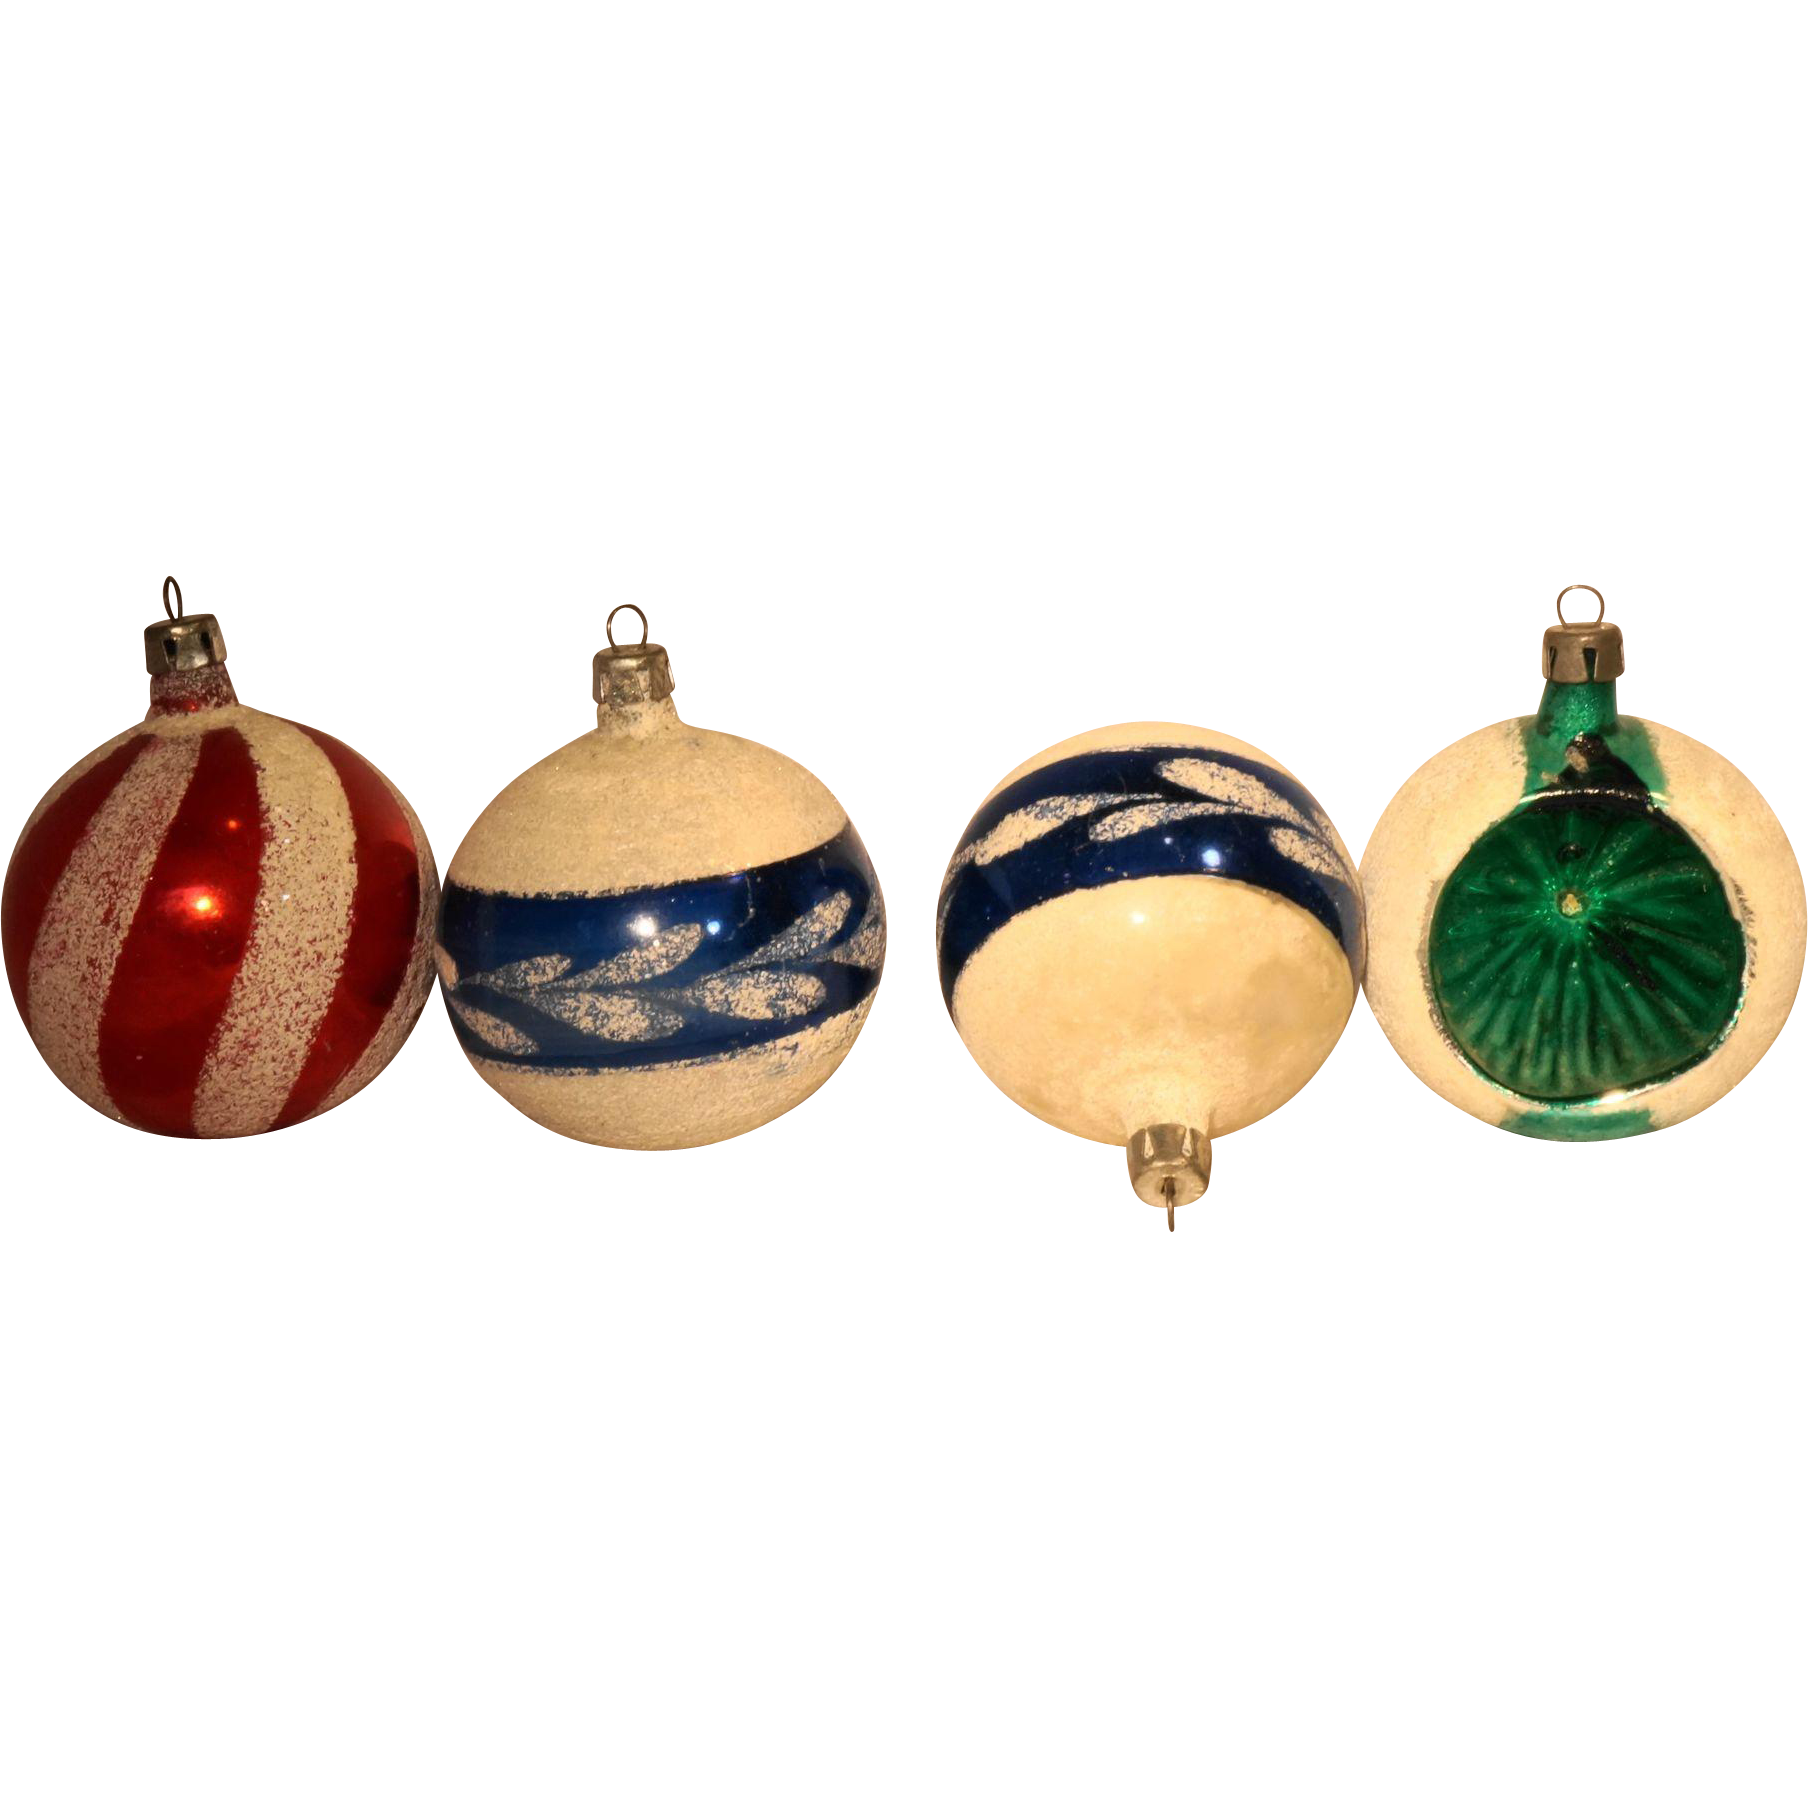 Poland Hand Painted Christmas Ornaments Set of 4 Mica Glitter 2 IN Balls Indent